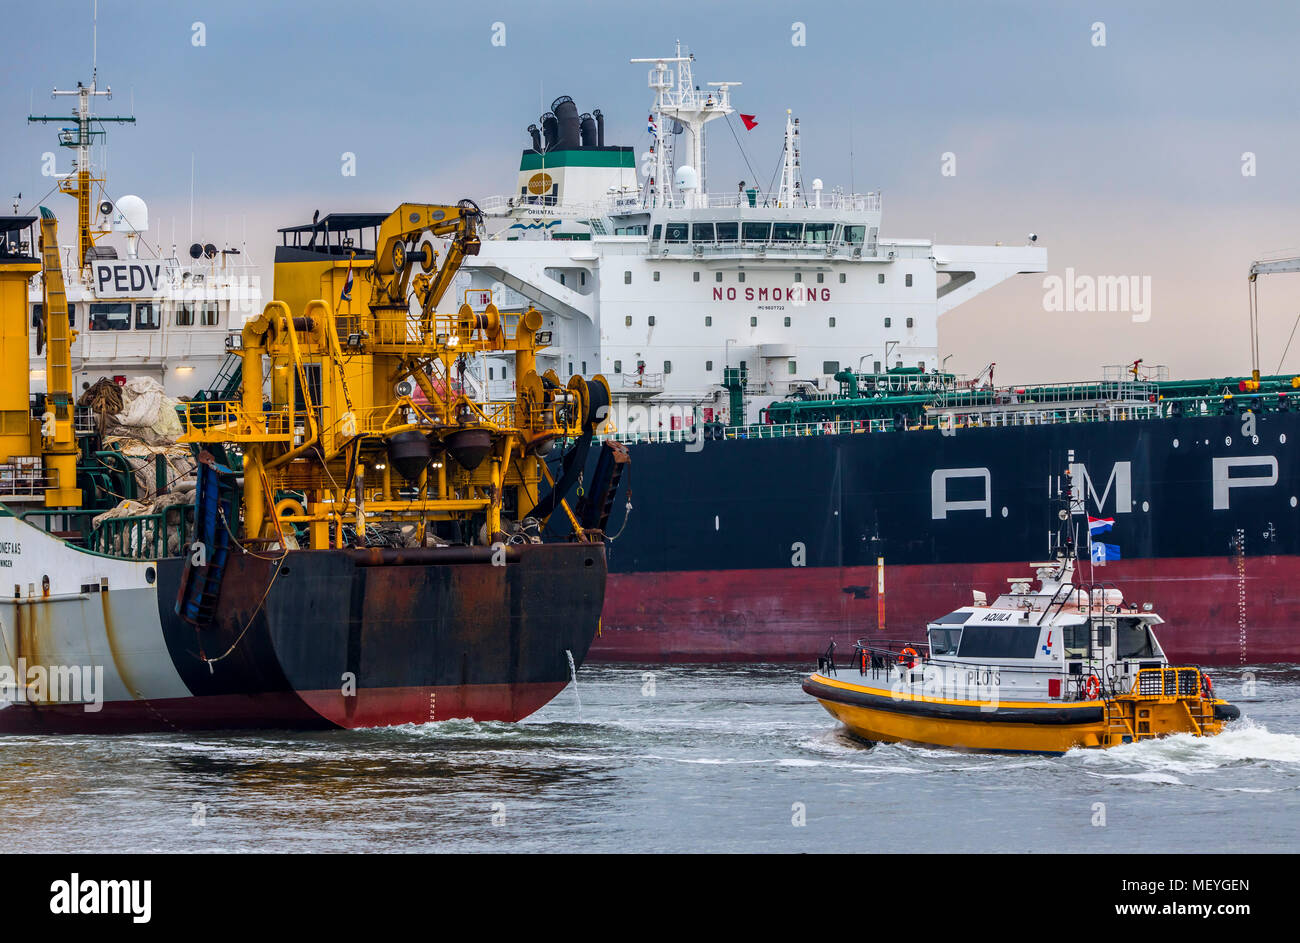 Crude oil tanker A.M.P.T.C-Sea Jewel, enters the port of Ijmuiden, in North Holland, Netherlands, harbor tug, fish trawler Frank Bonefaas, runs out of - Stock Image